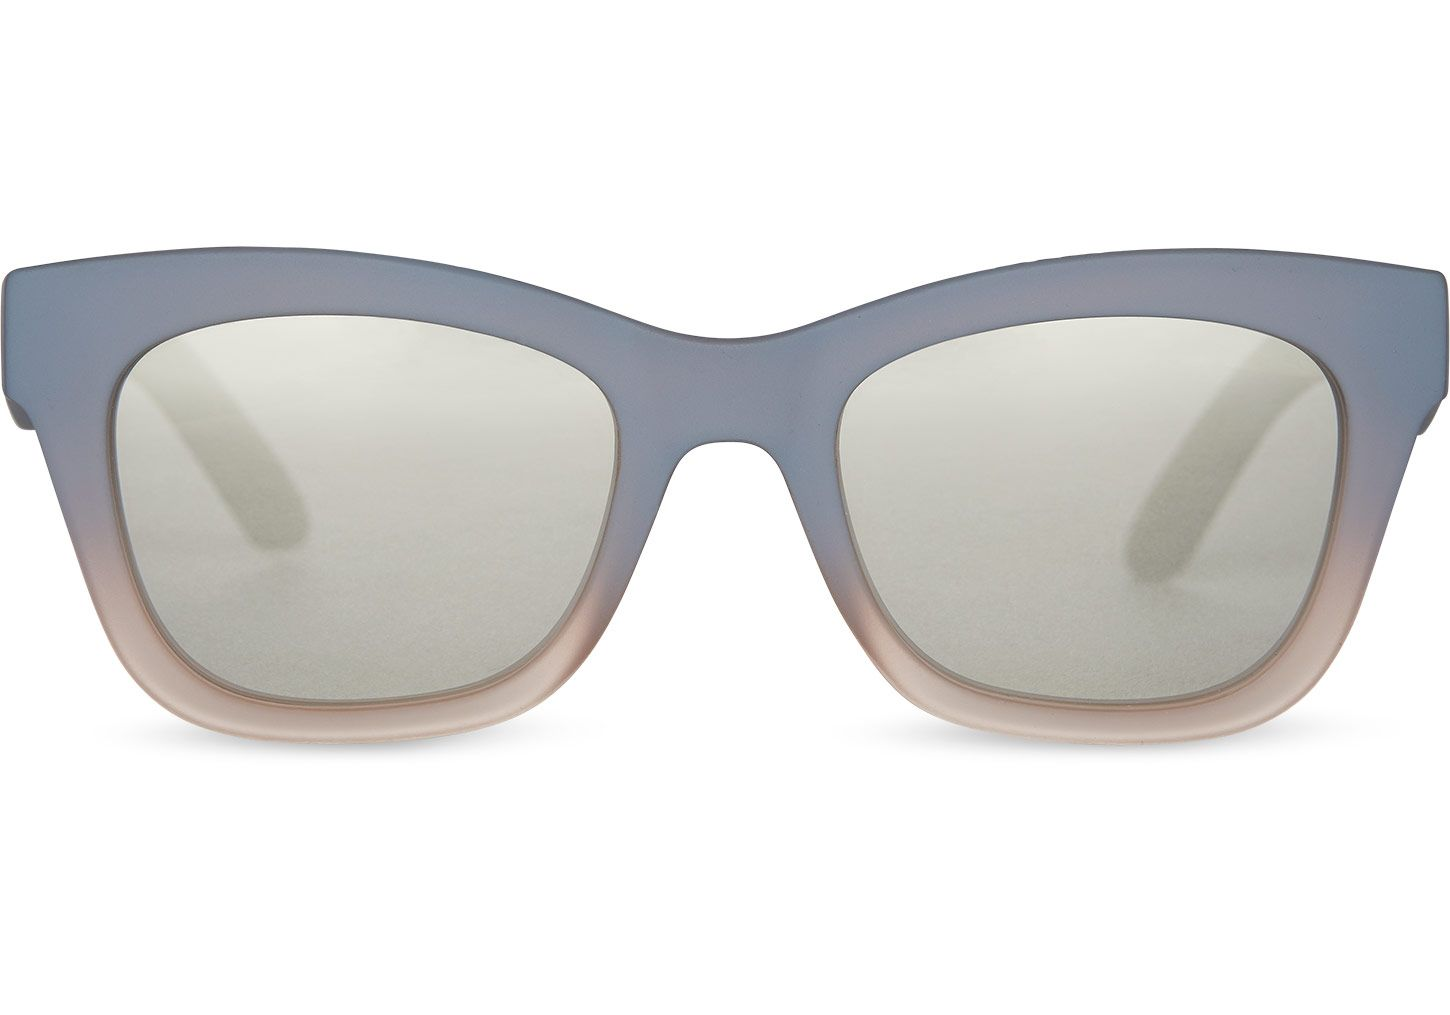 9a7530949b32 The Paloma adds a hint of cat eye to a timeless frame. All sunglasses in